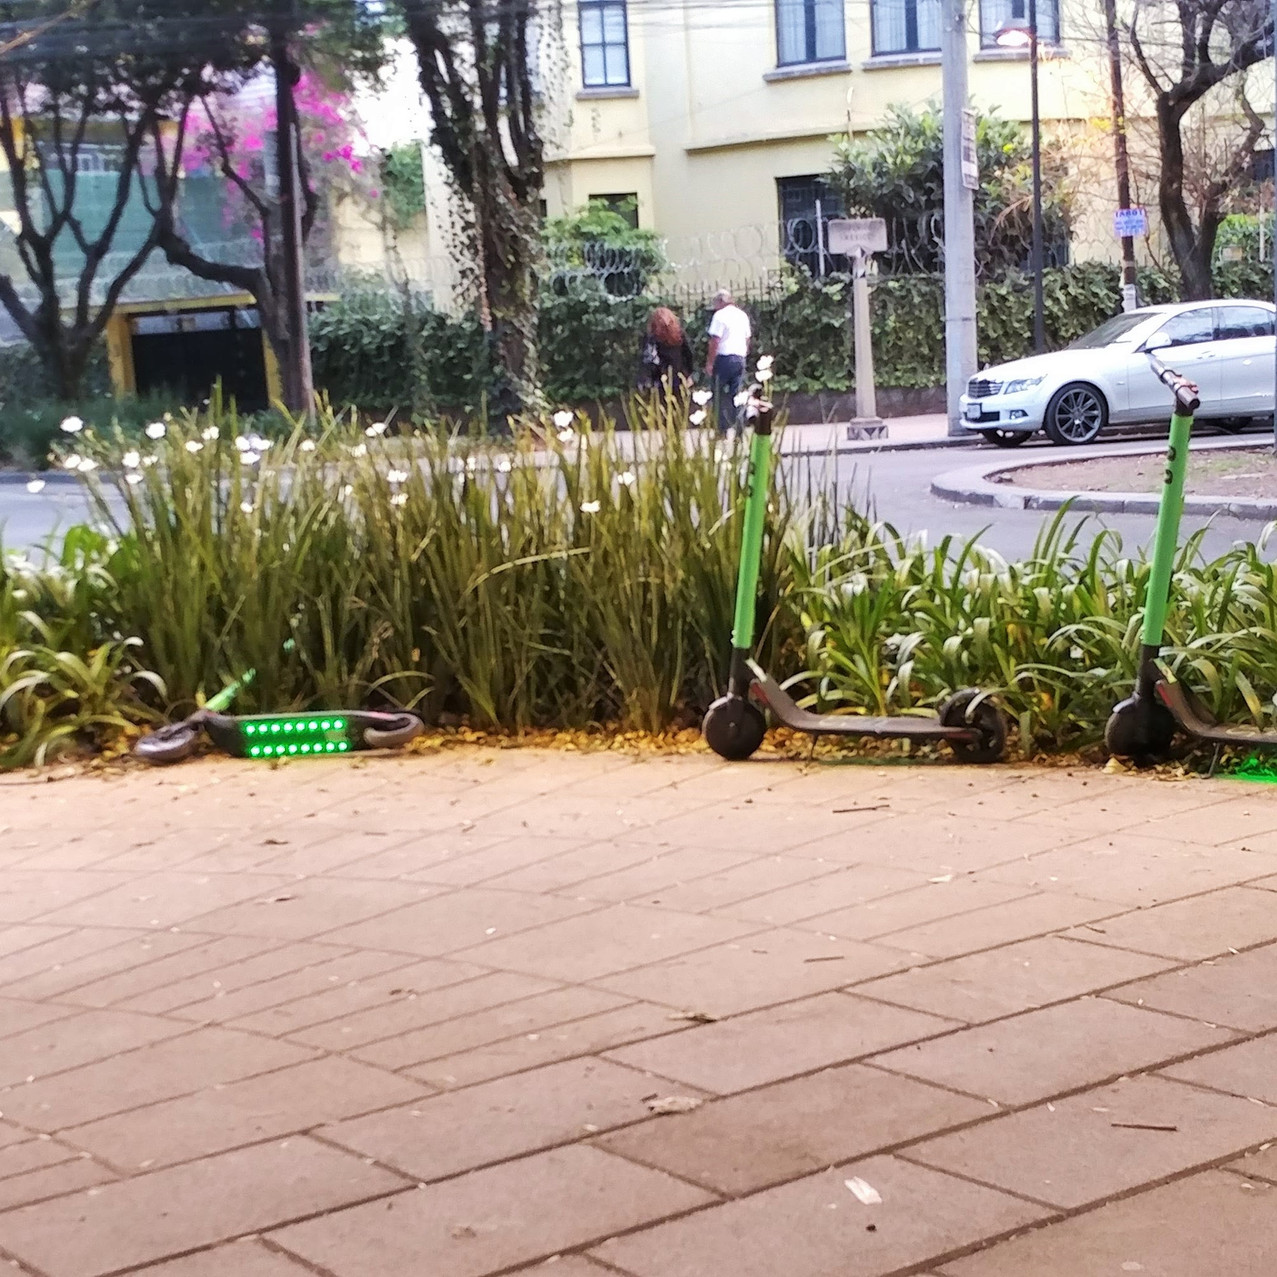 Scooters in Condesa